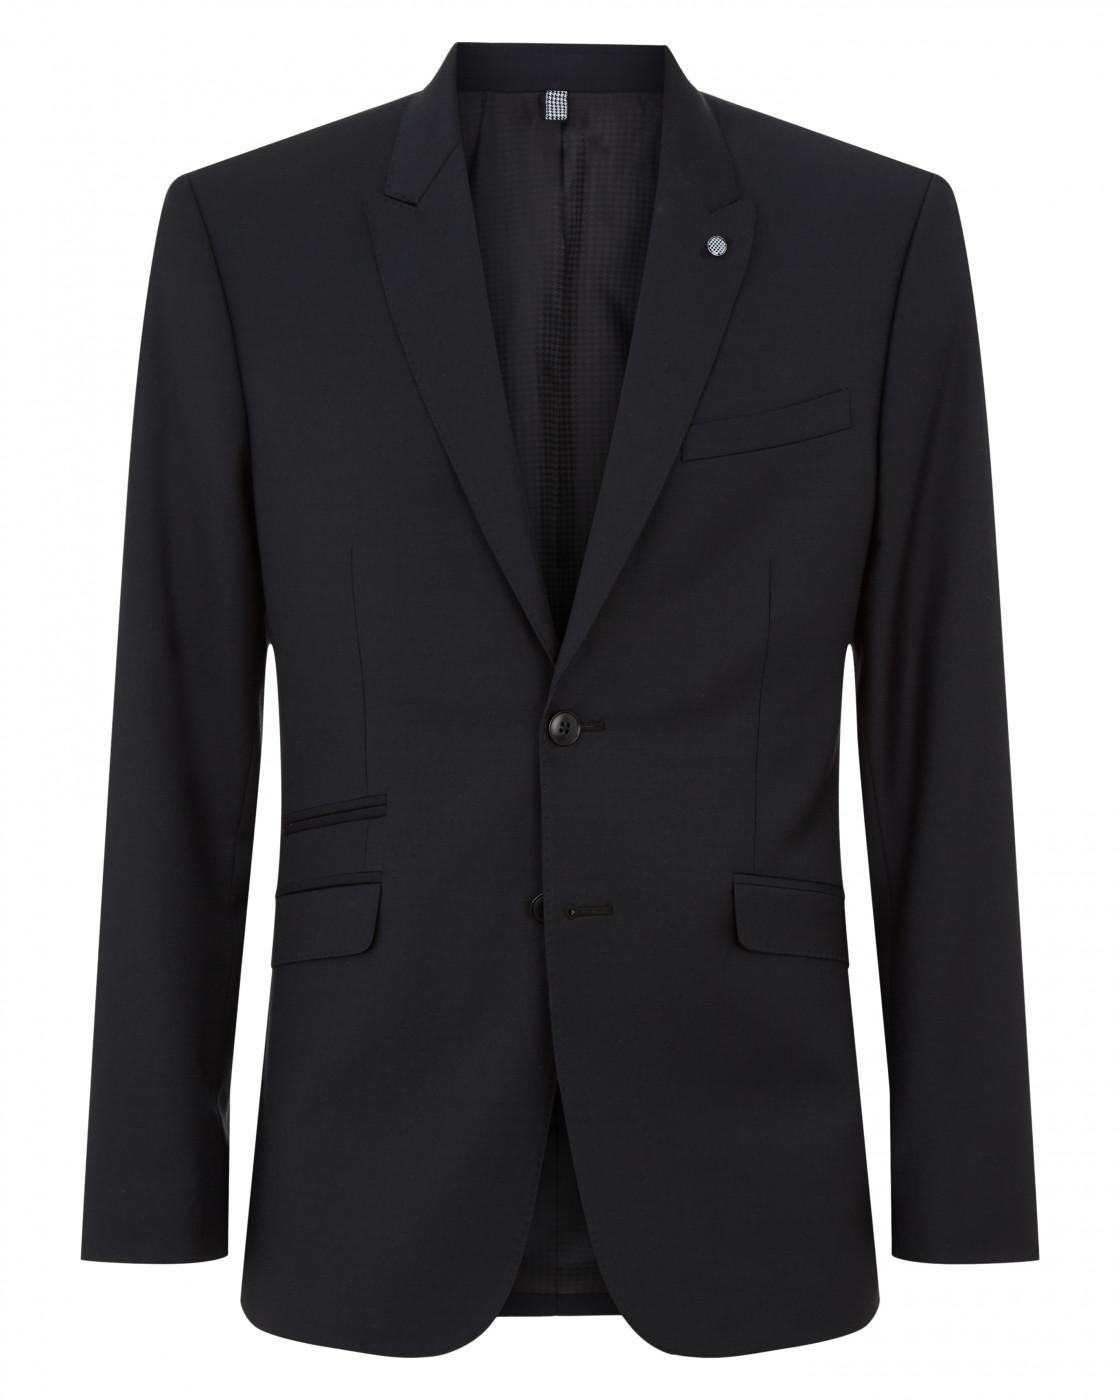 Slim Plain Weave Black Suit Jacket By Austin Reed Thread